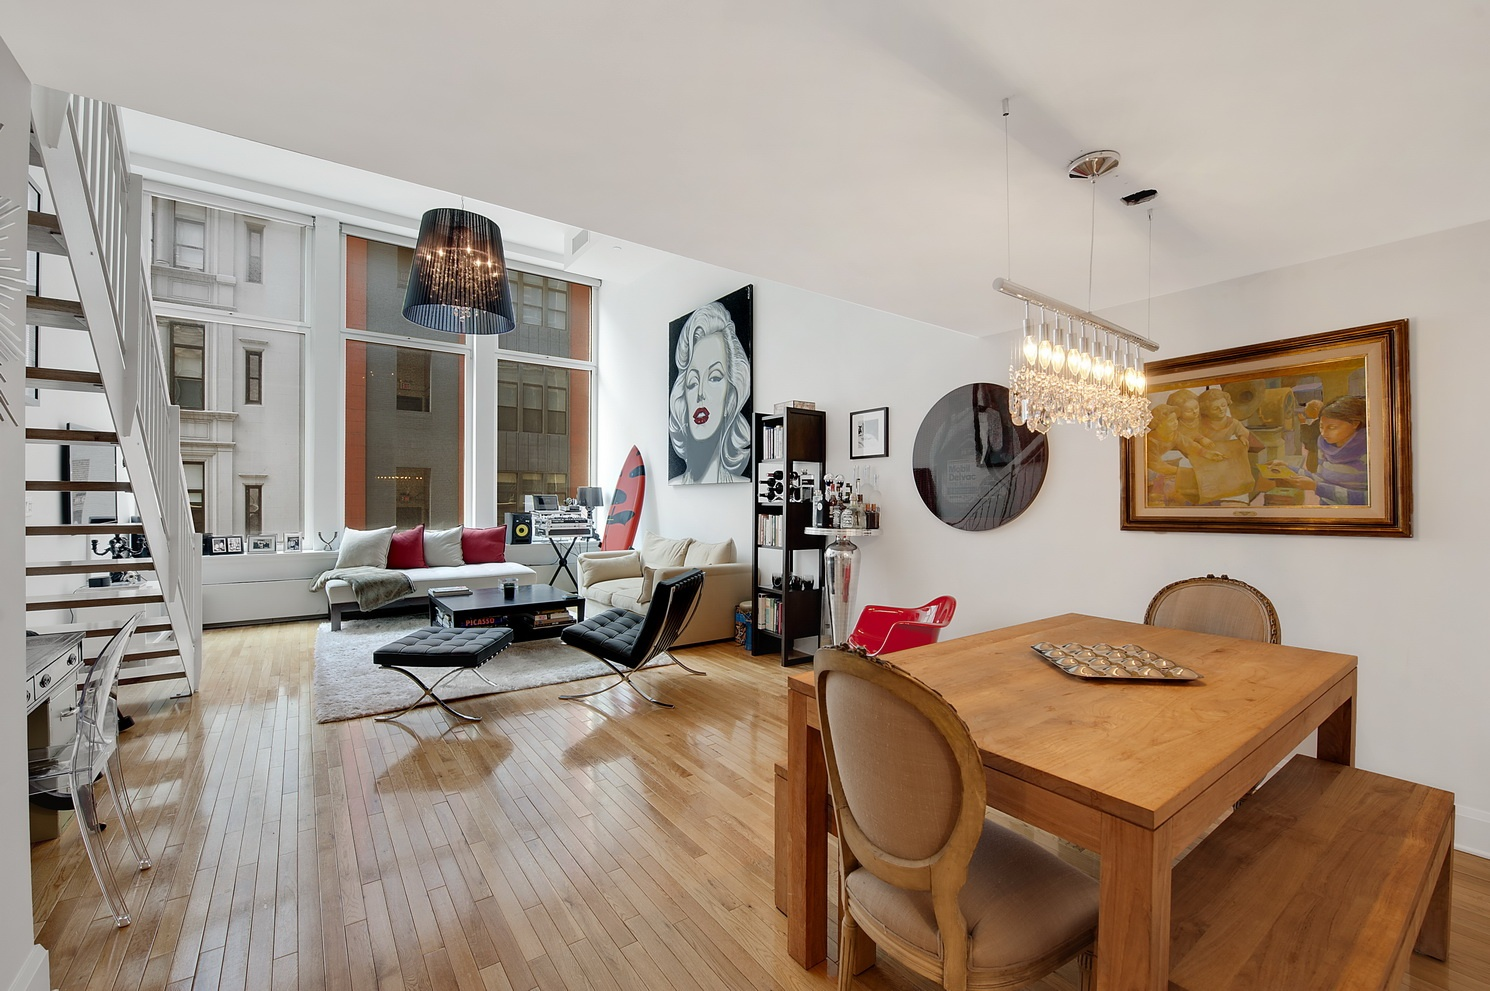 Duplex one bedroom loft in chelsea with 15 foot ceilings 1 for Loft in manhattan for sale